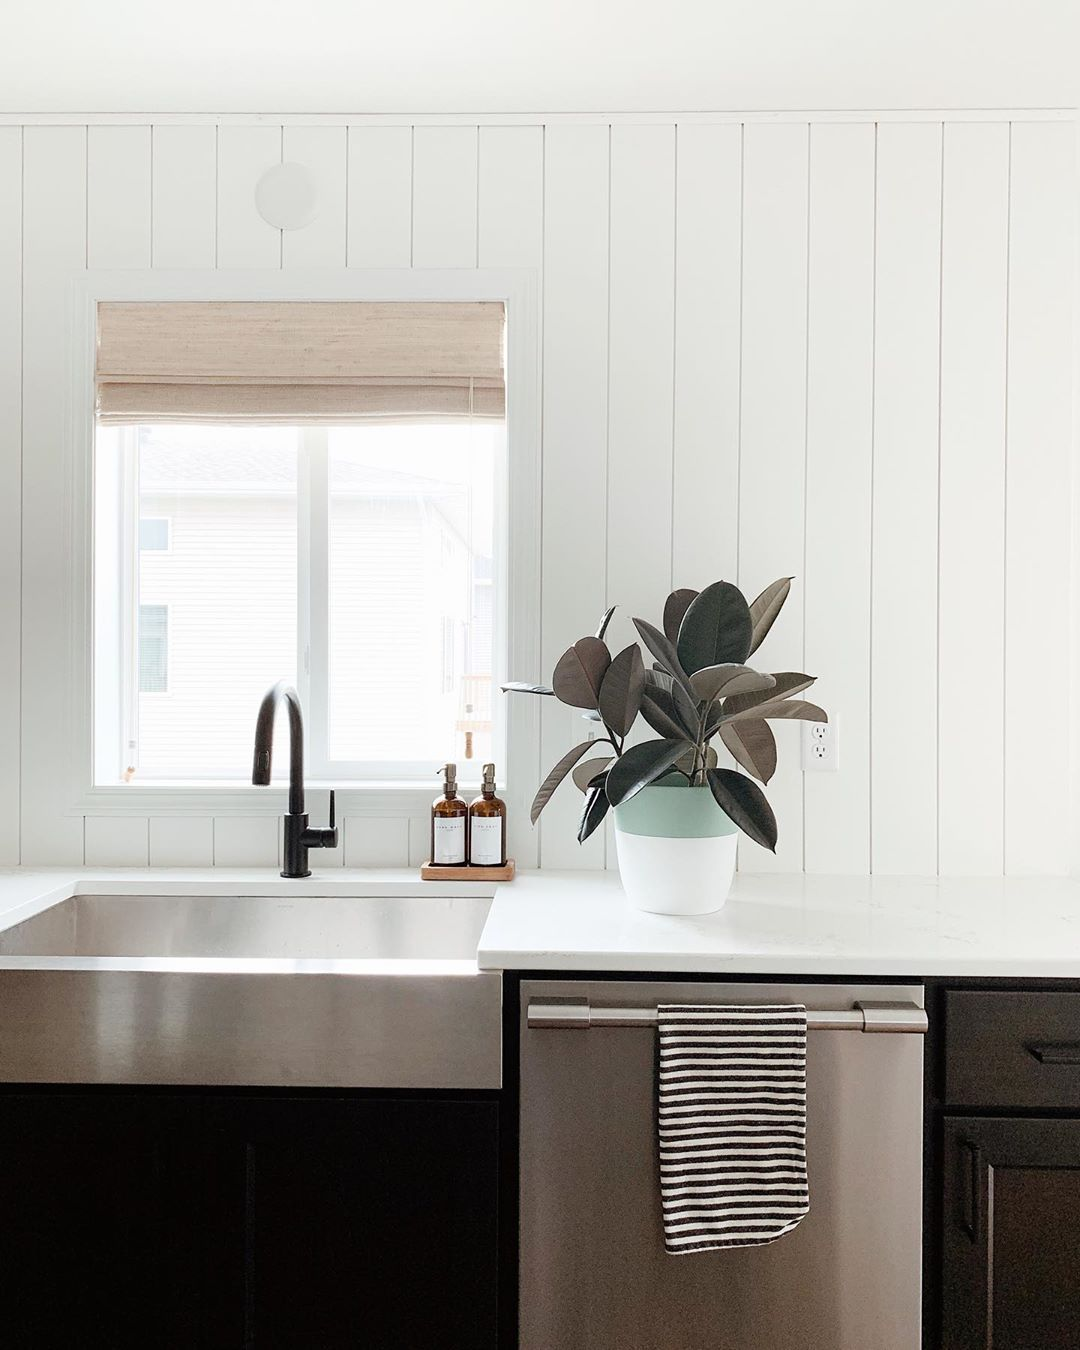 C H E L S E Y On Instagram I M In Love I M In Love And I Don T Care Who Knows It Obsessed With O In 2020 Shiplap Backsplash Shiplap Kitchen Diy Kitchen Backsplash